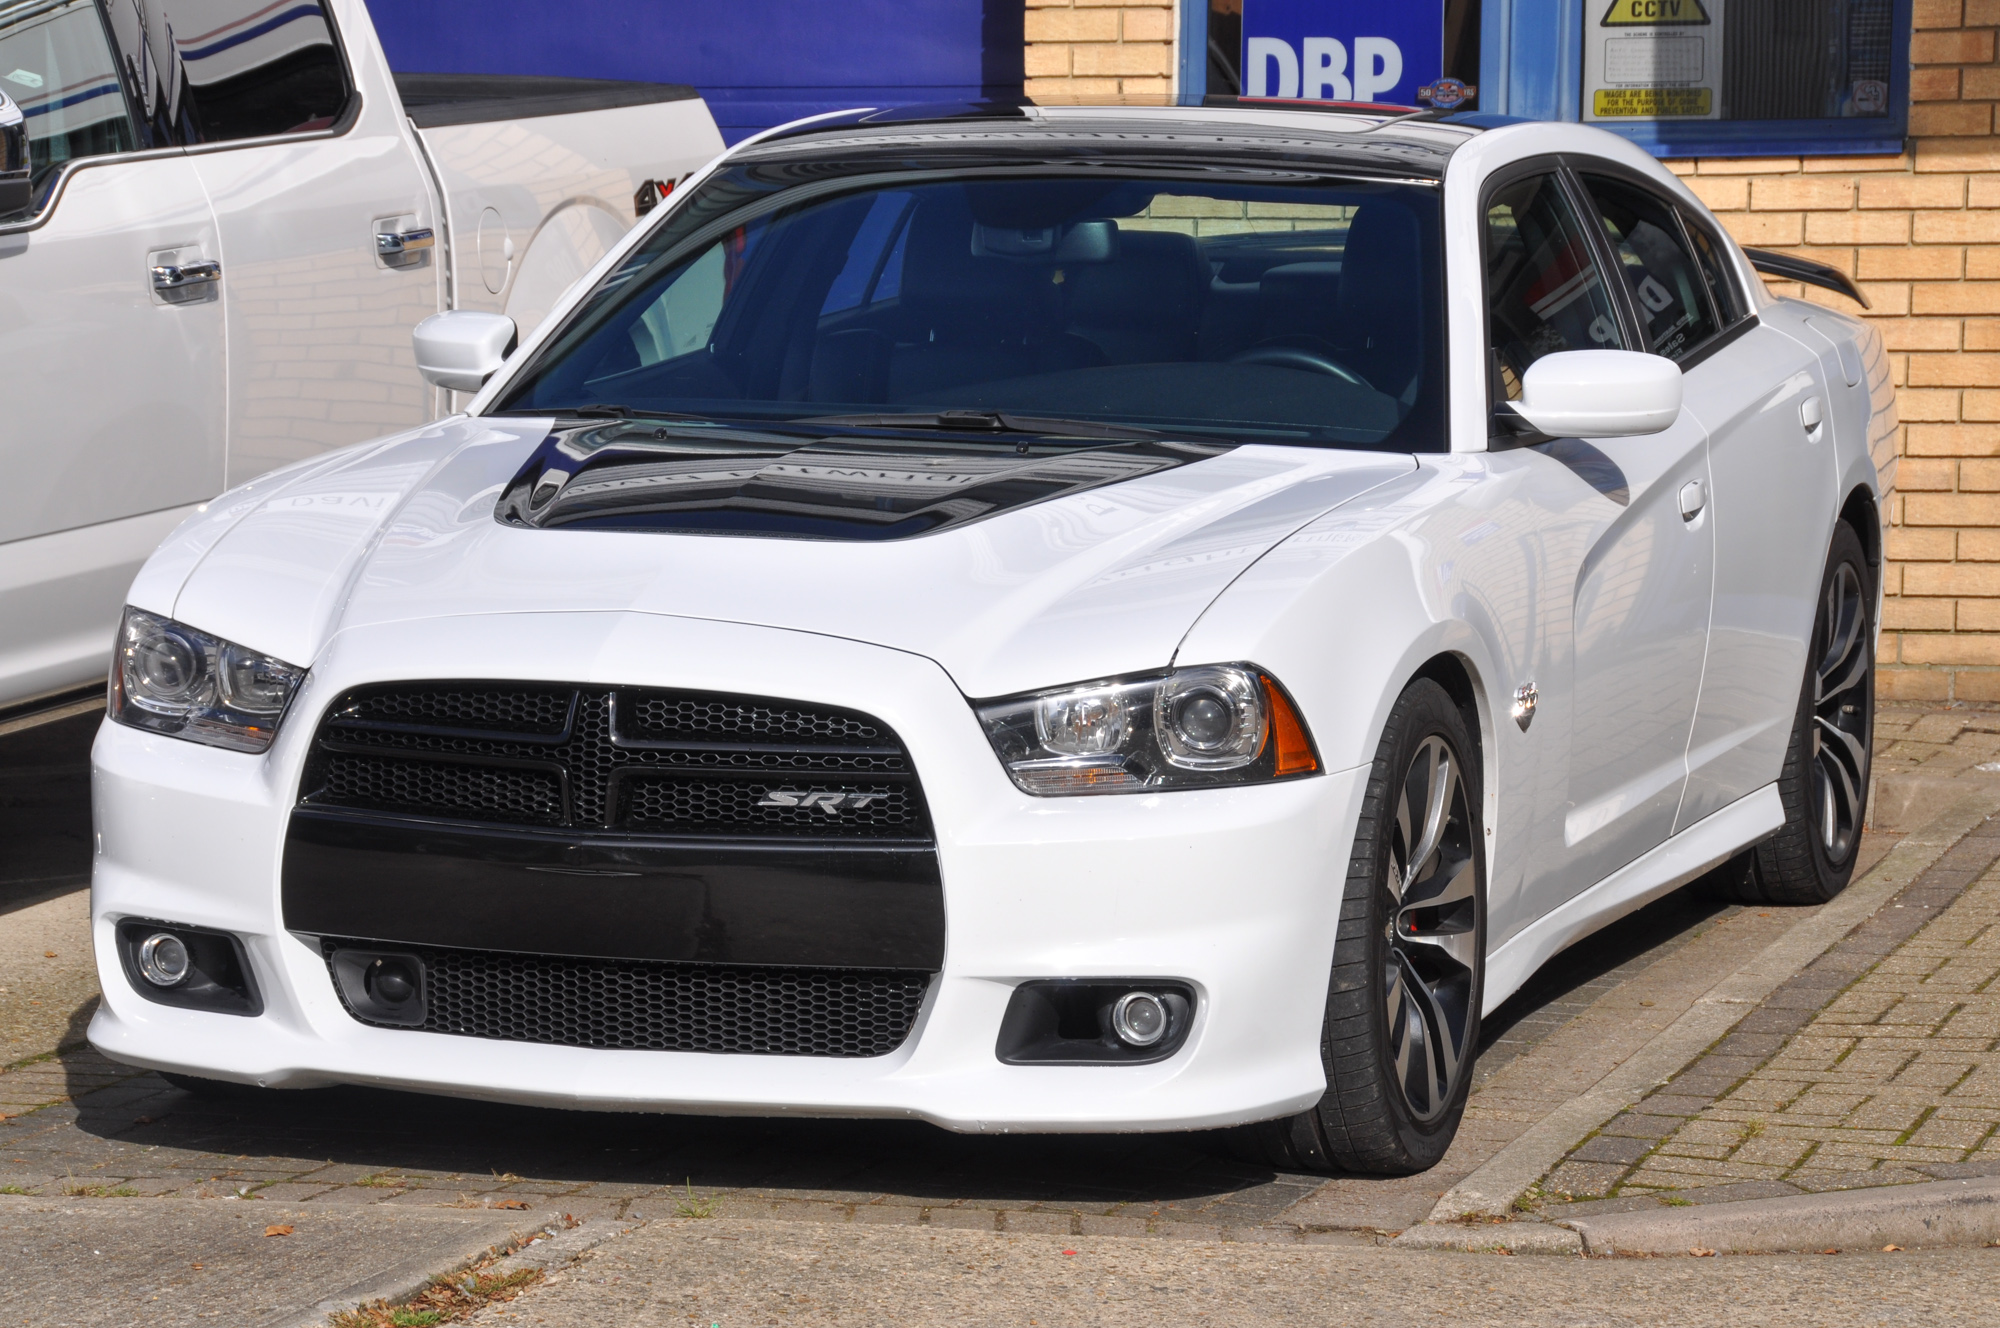 2013 Dodge Charger 392 Srt8 6 4 Litre David Boatwright